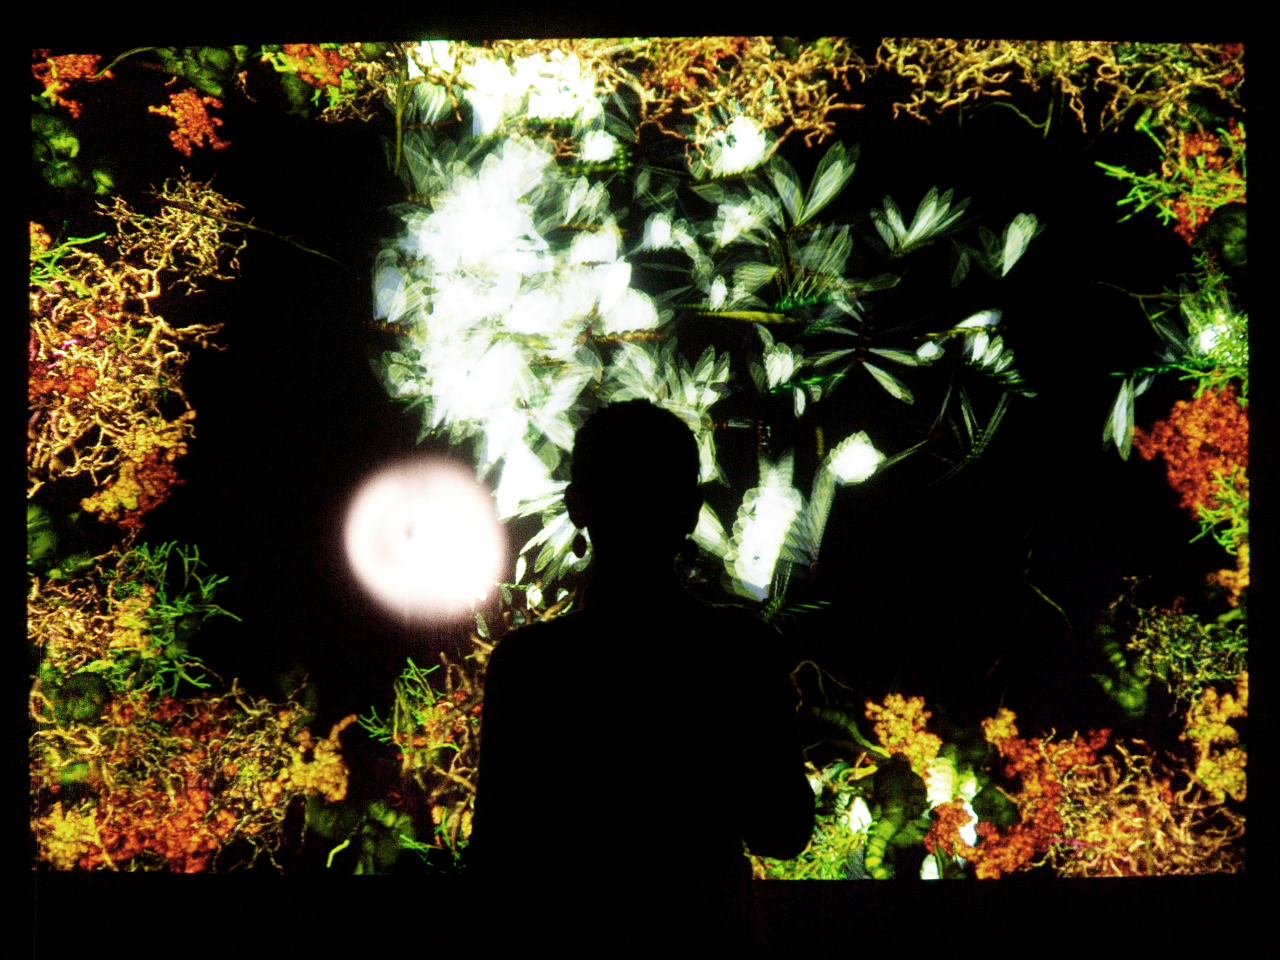 The silhouette of a person in front of a screen of glowing plants